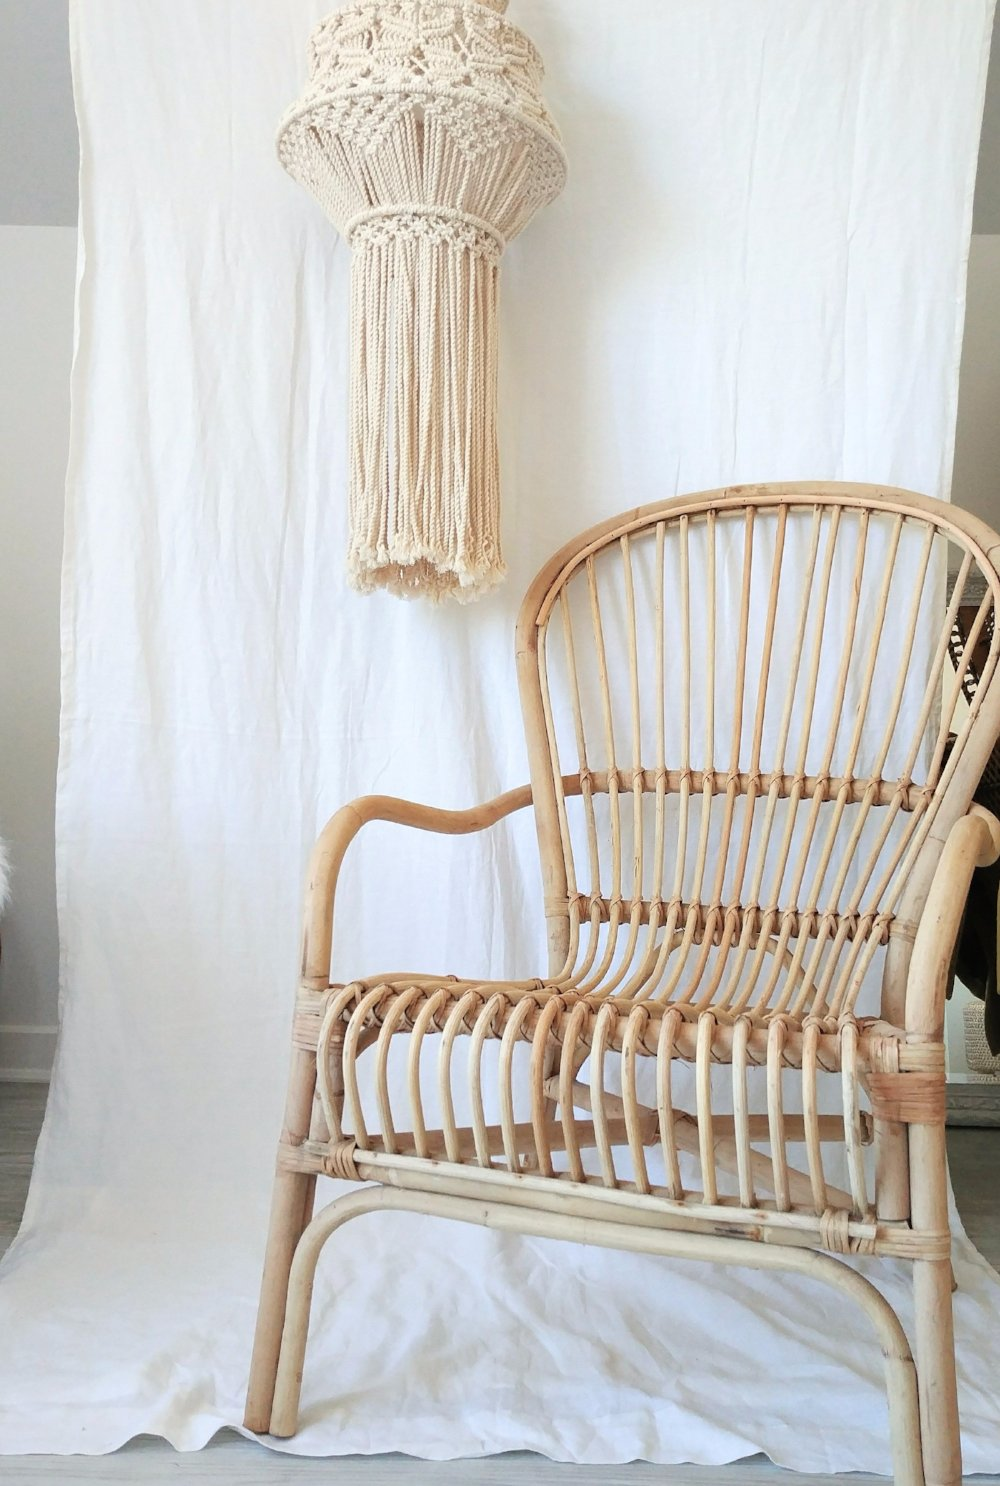 Indonesian Natural Rattan Chair